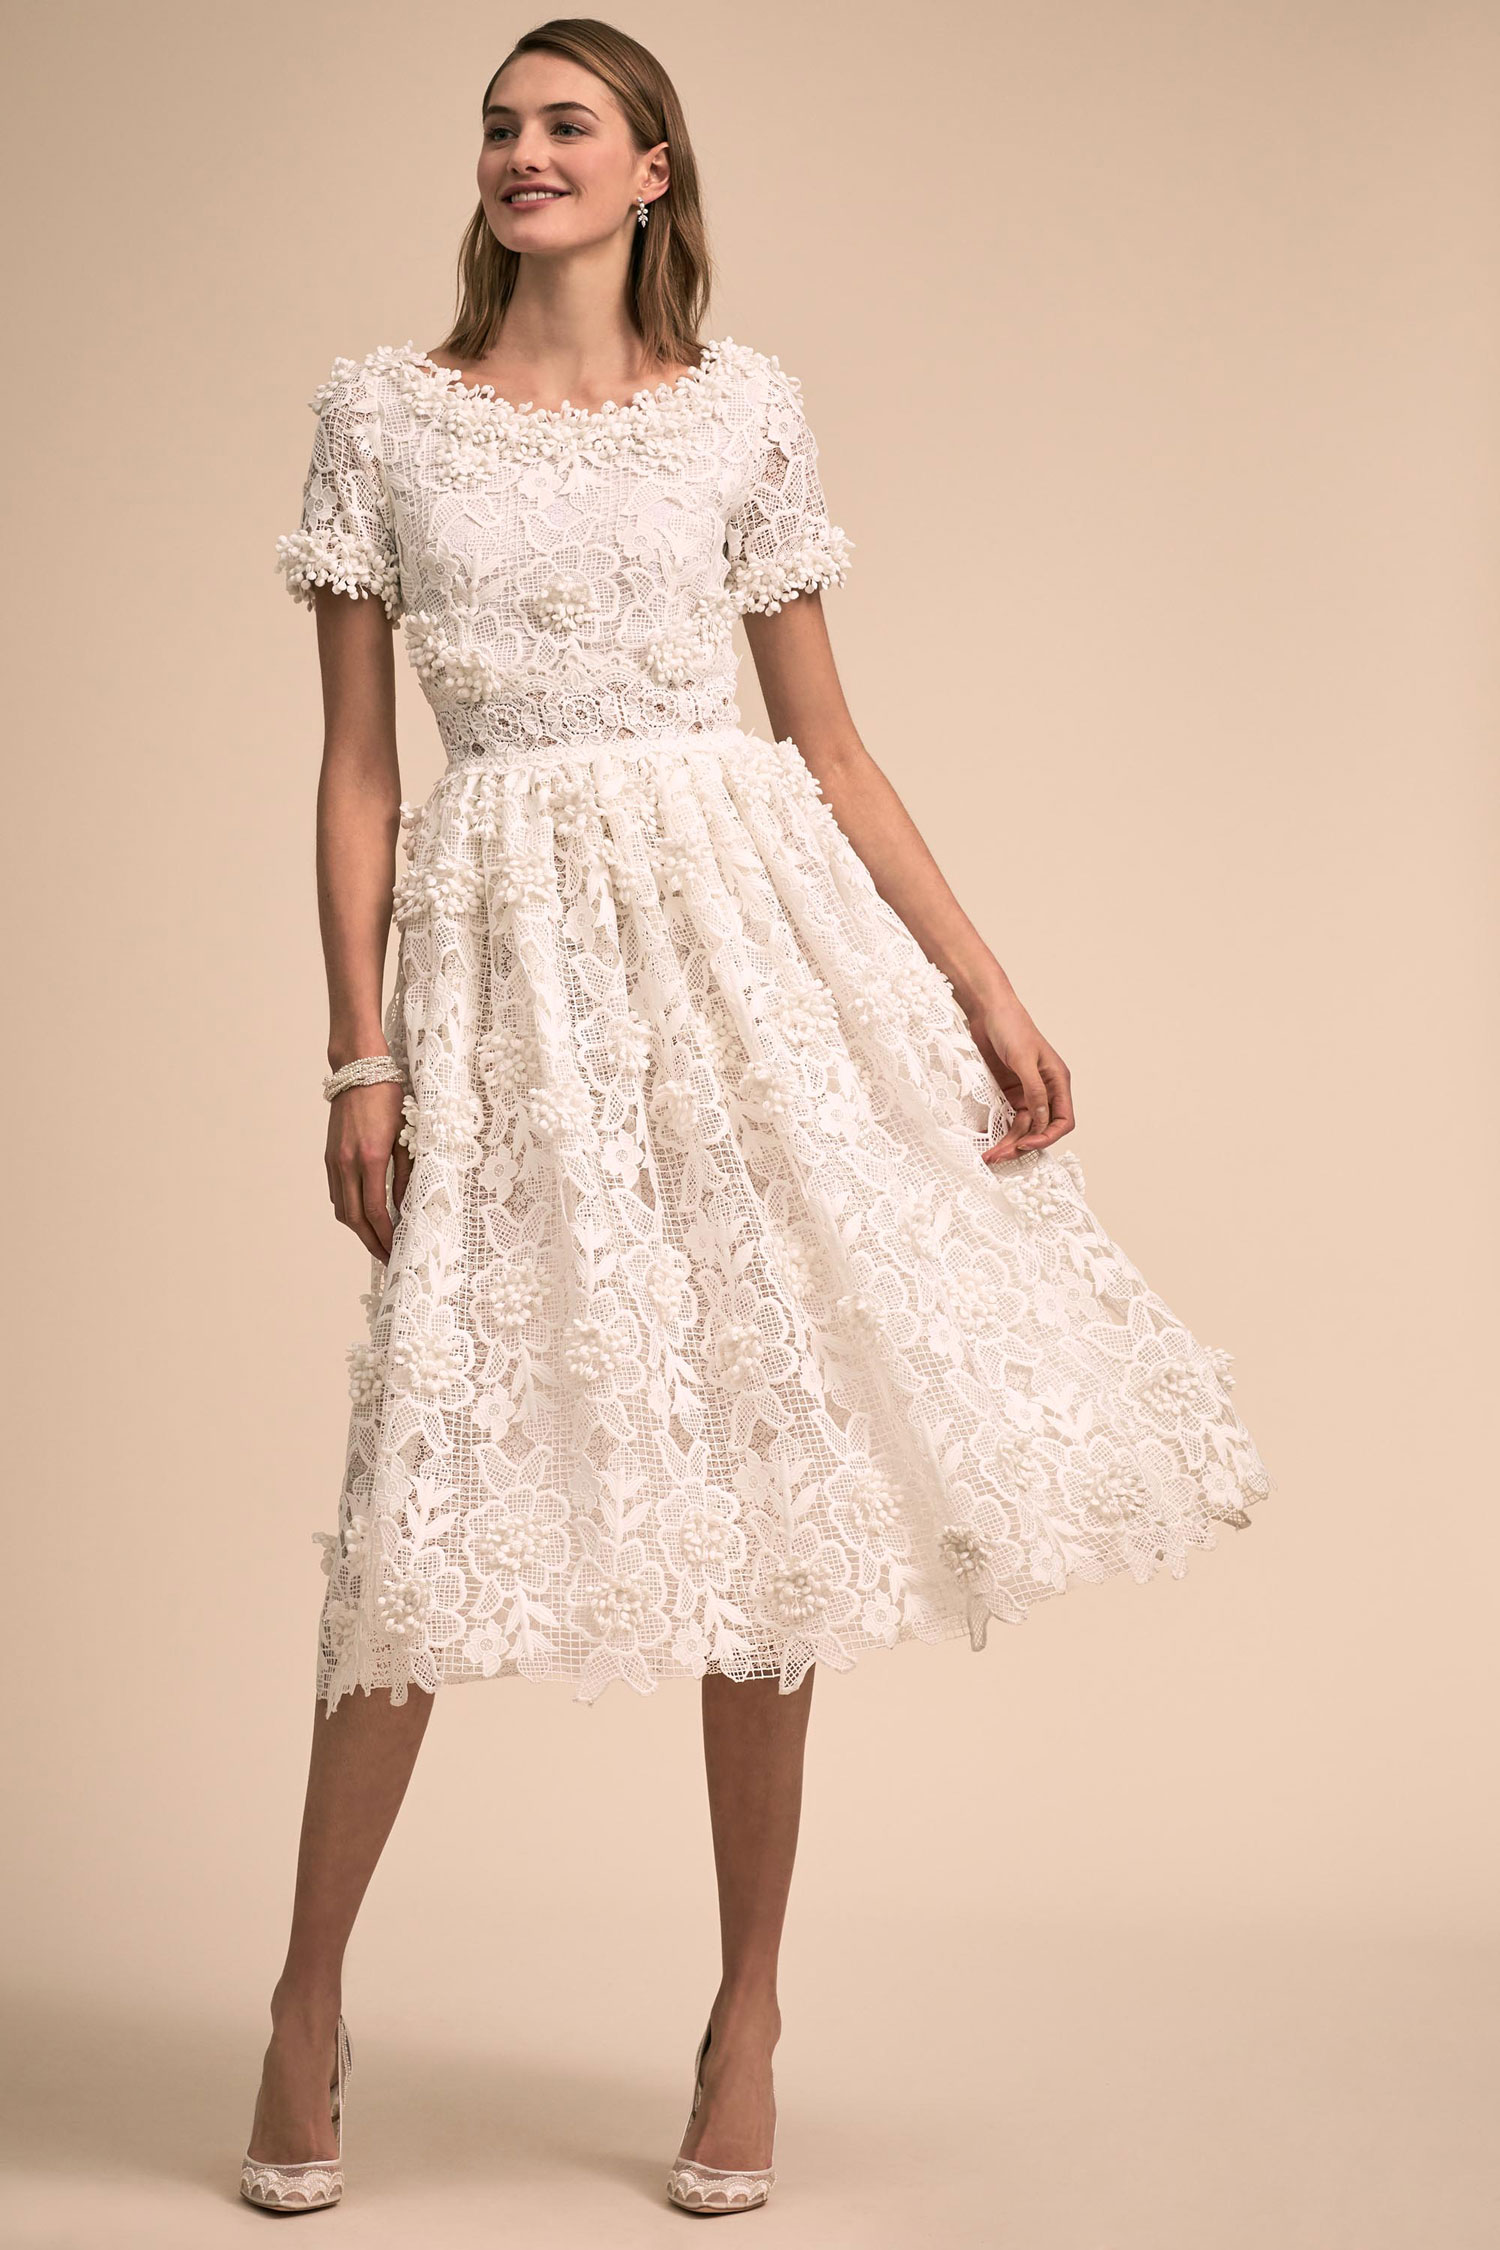 Wedding Dresses: Shop The Designer Collective by BHLDN - Inside Weddings